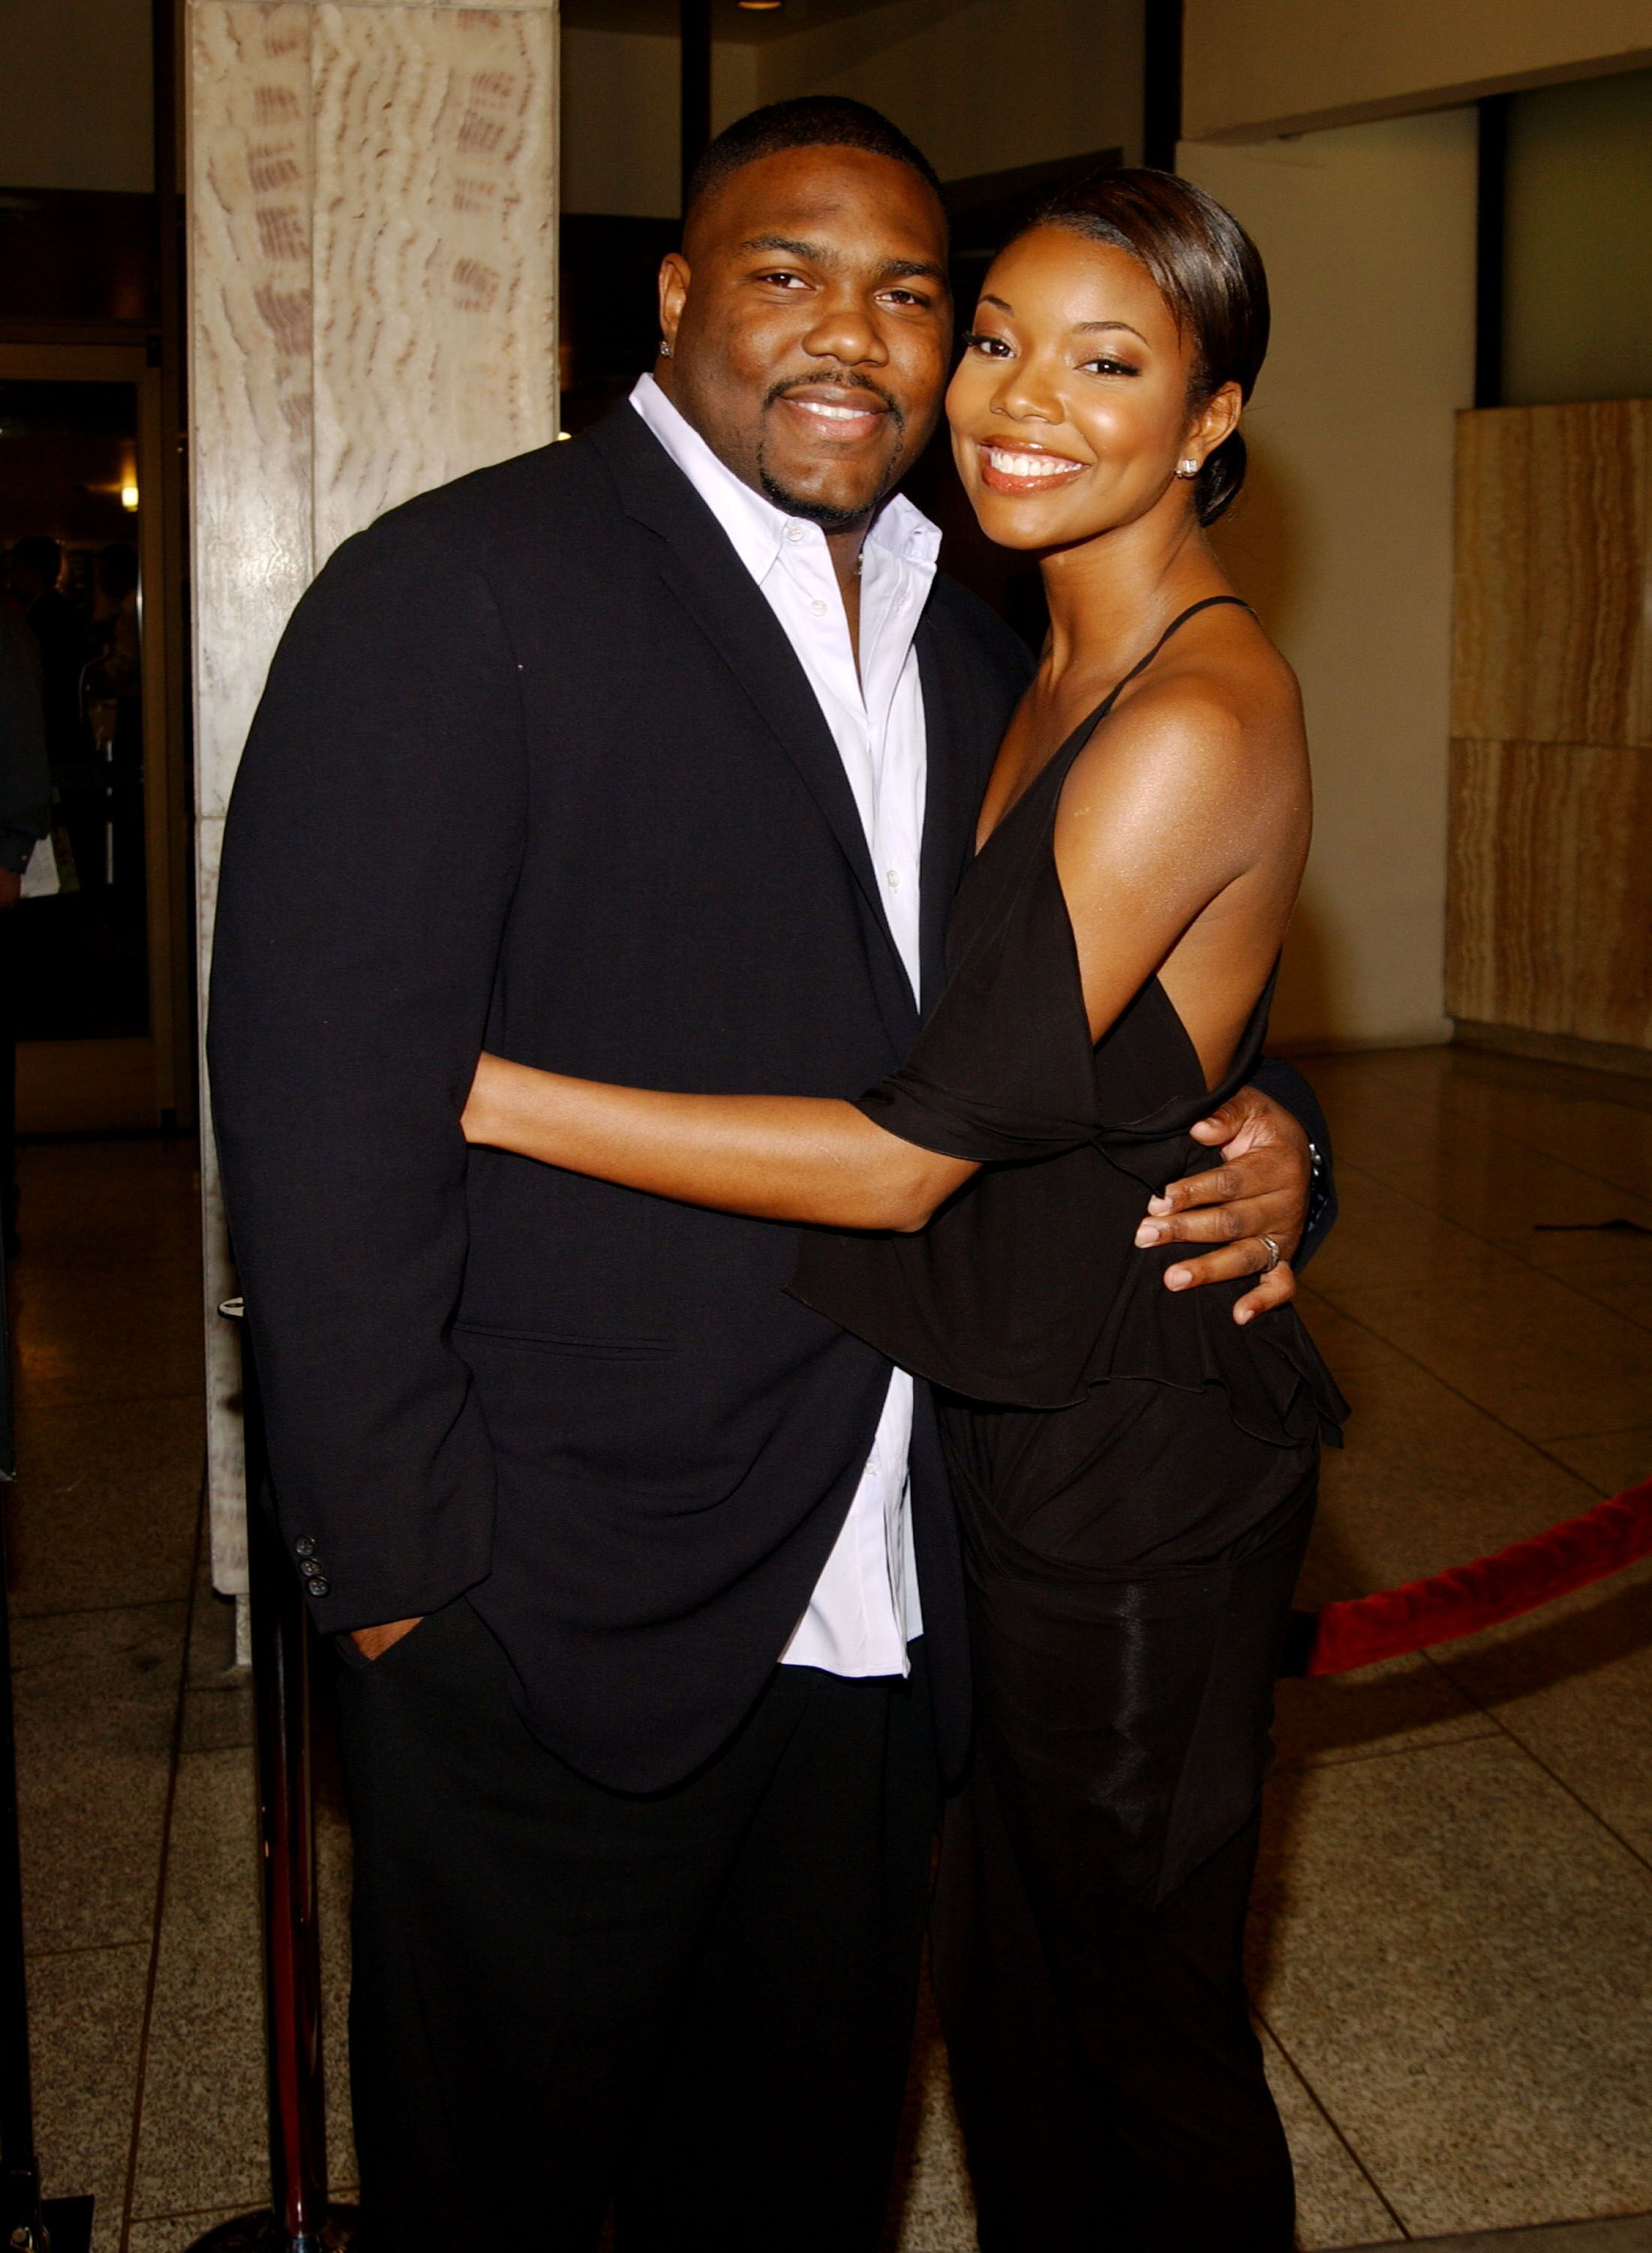 """Chris Howard and Gabrielle Union at the """"Deliver Us From Eva"""" premiere in Los Angeles in 2003 